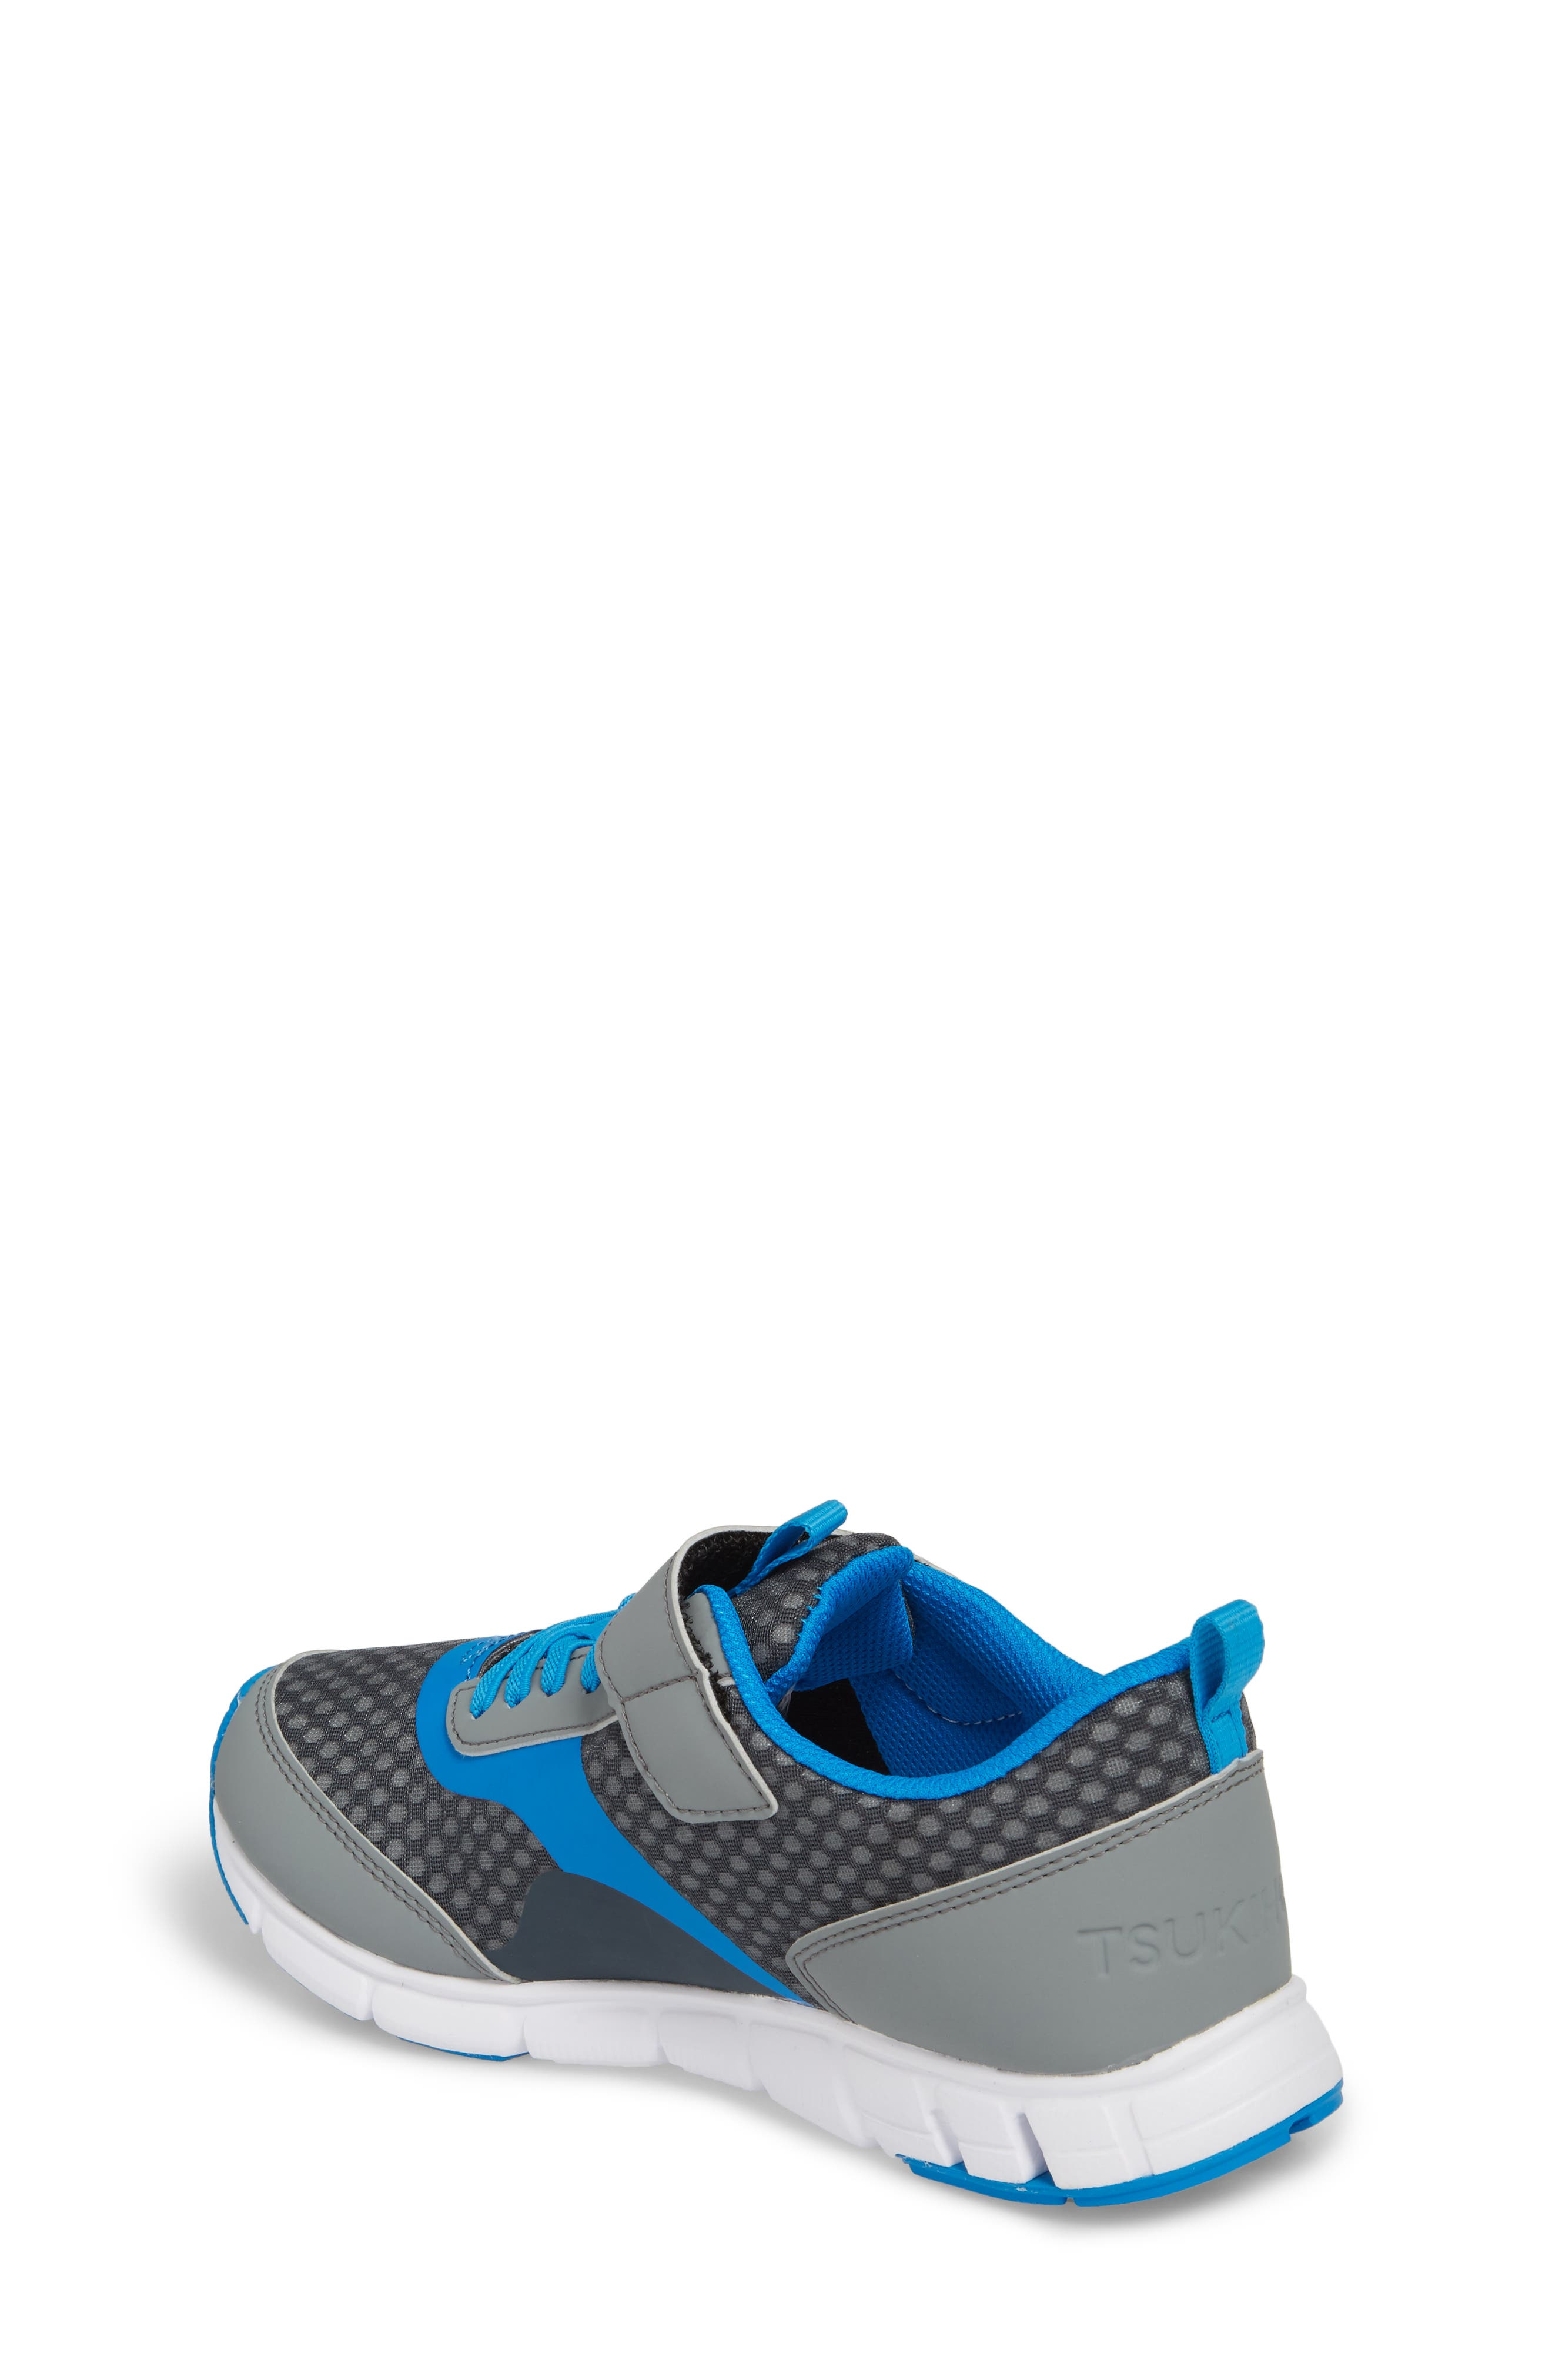 Sonic Washable Sneaker,                             Alternate thumbnail 2, color,                             GRAY/ ROYAL